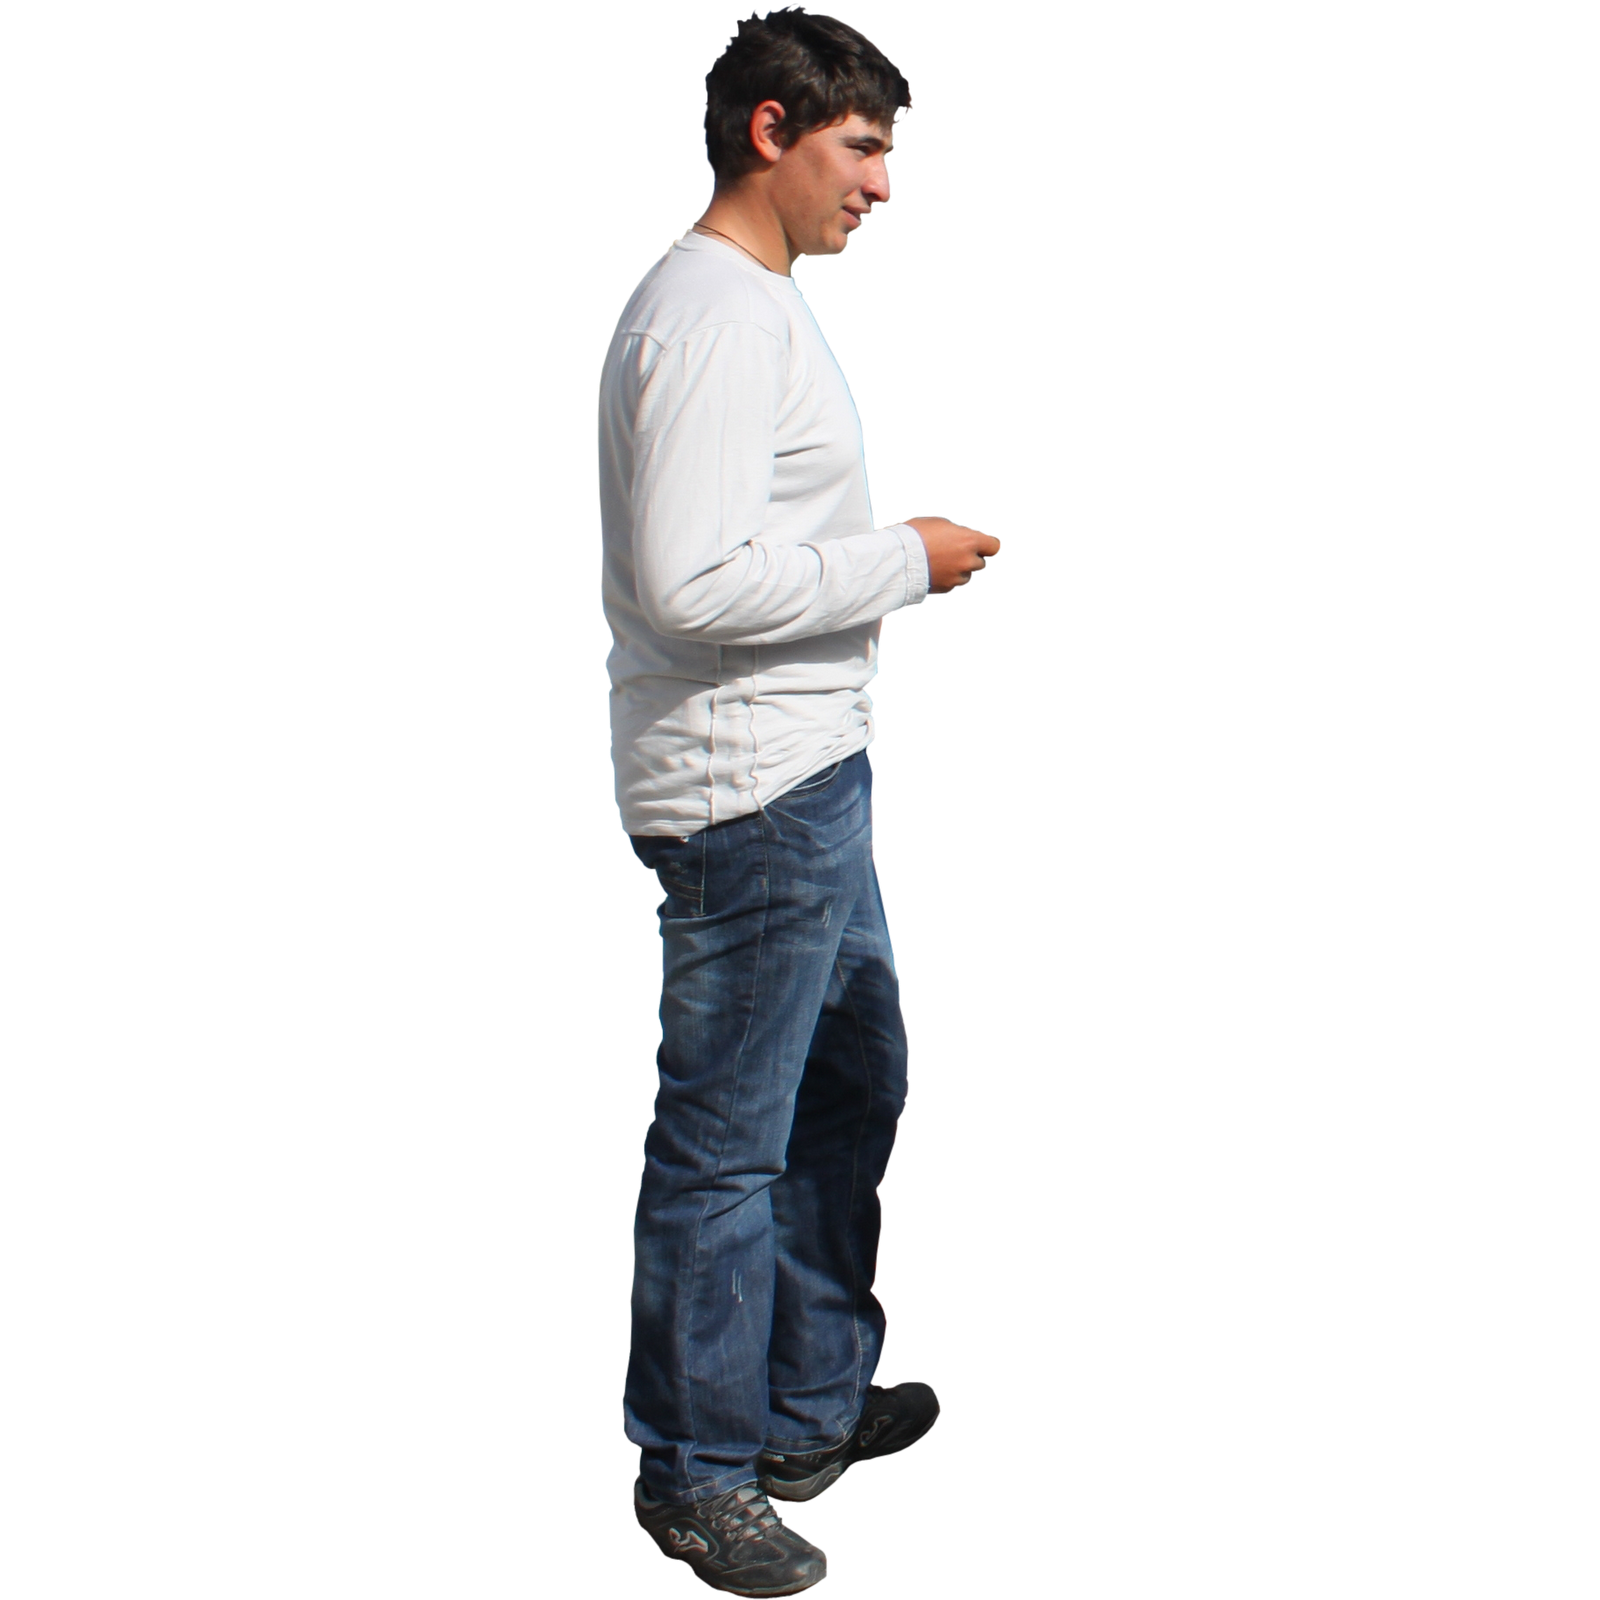 Png images free download. Tall clipart attractive man